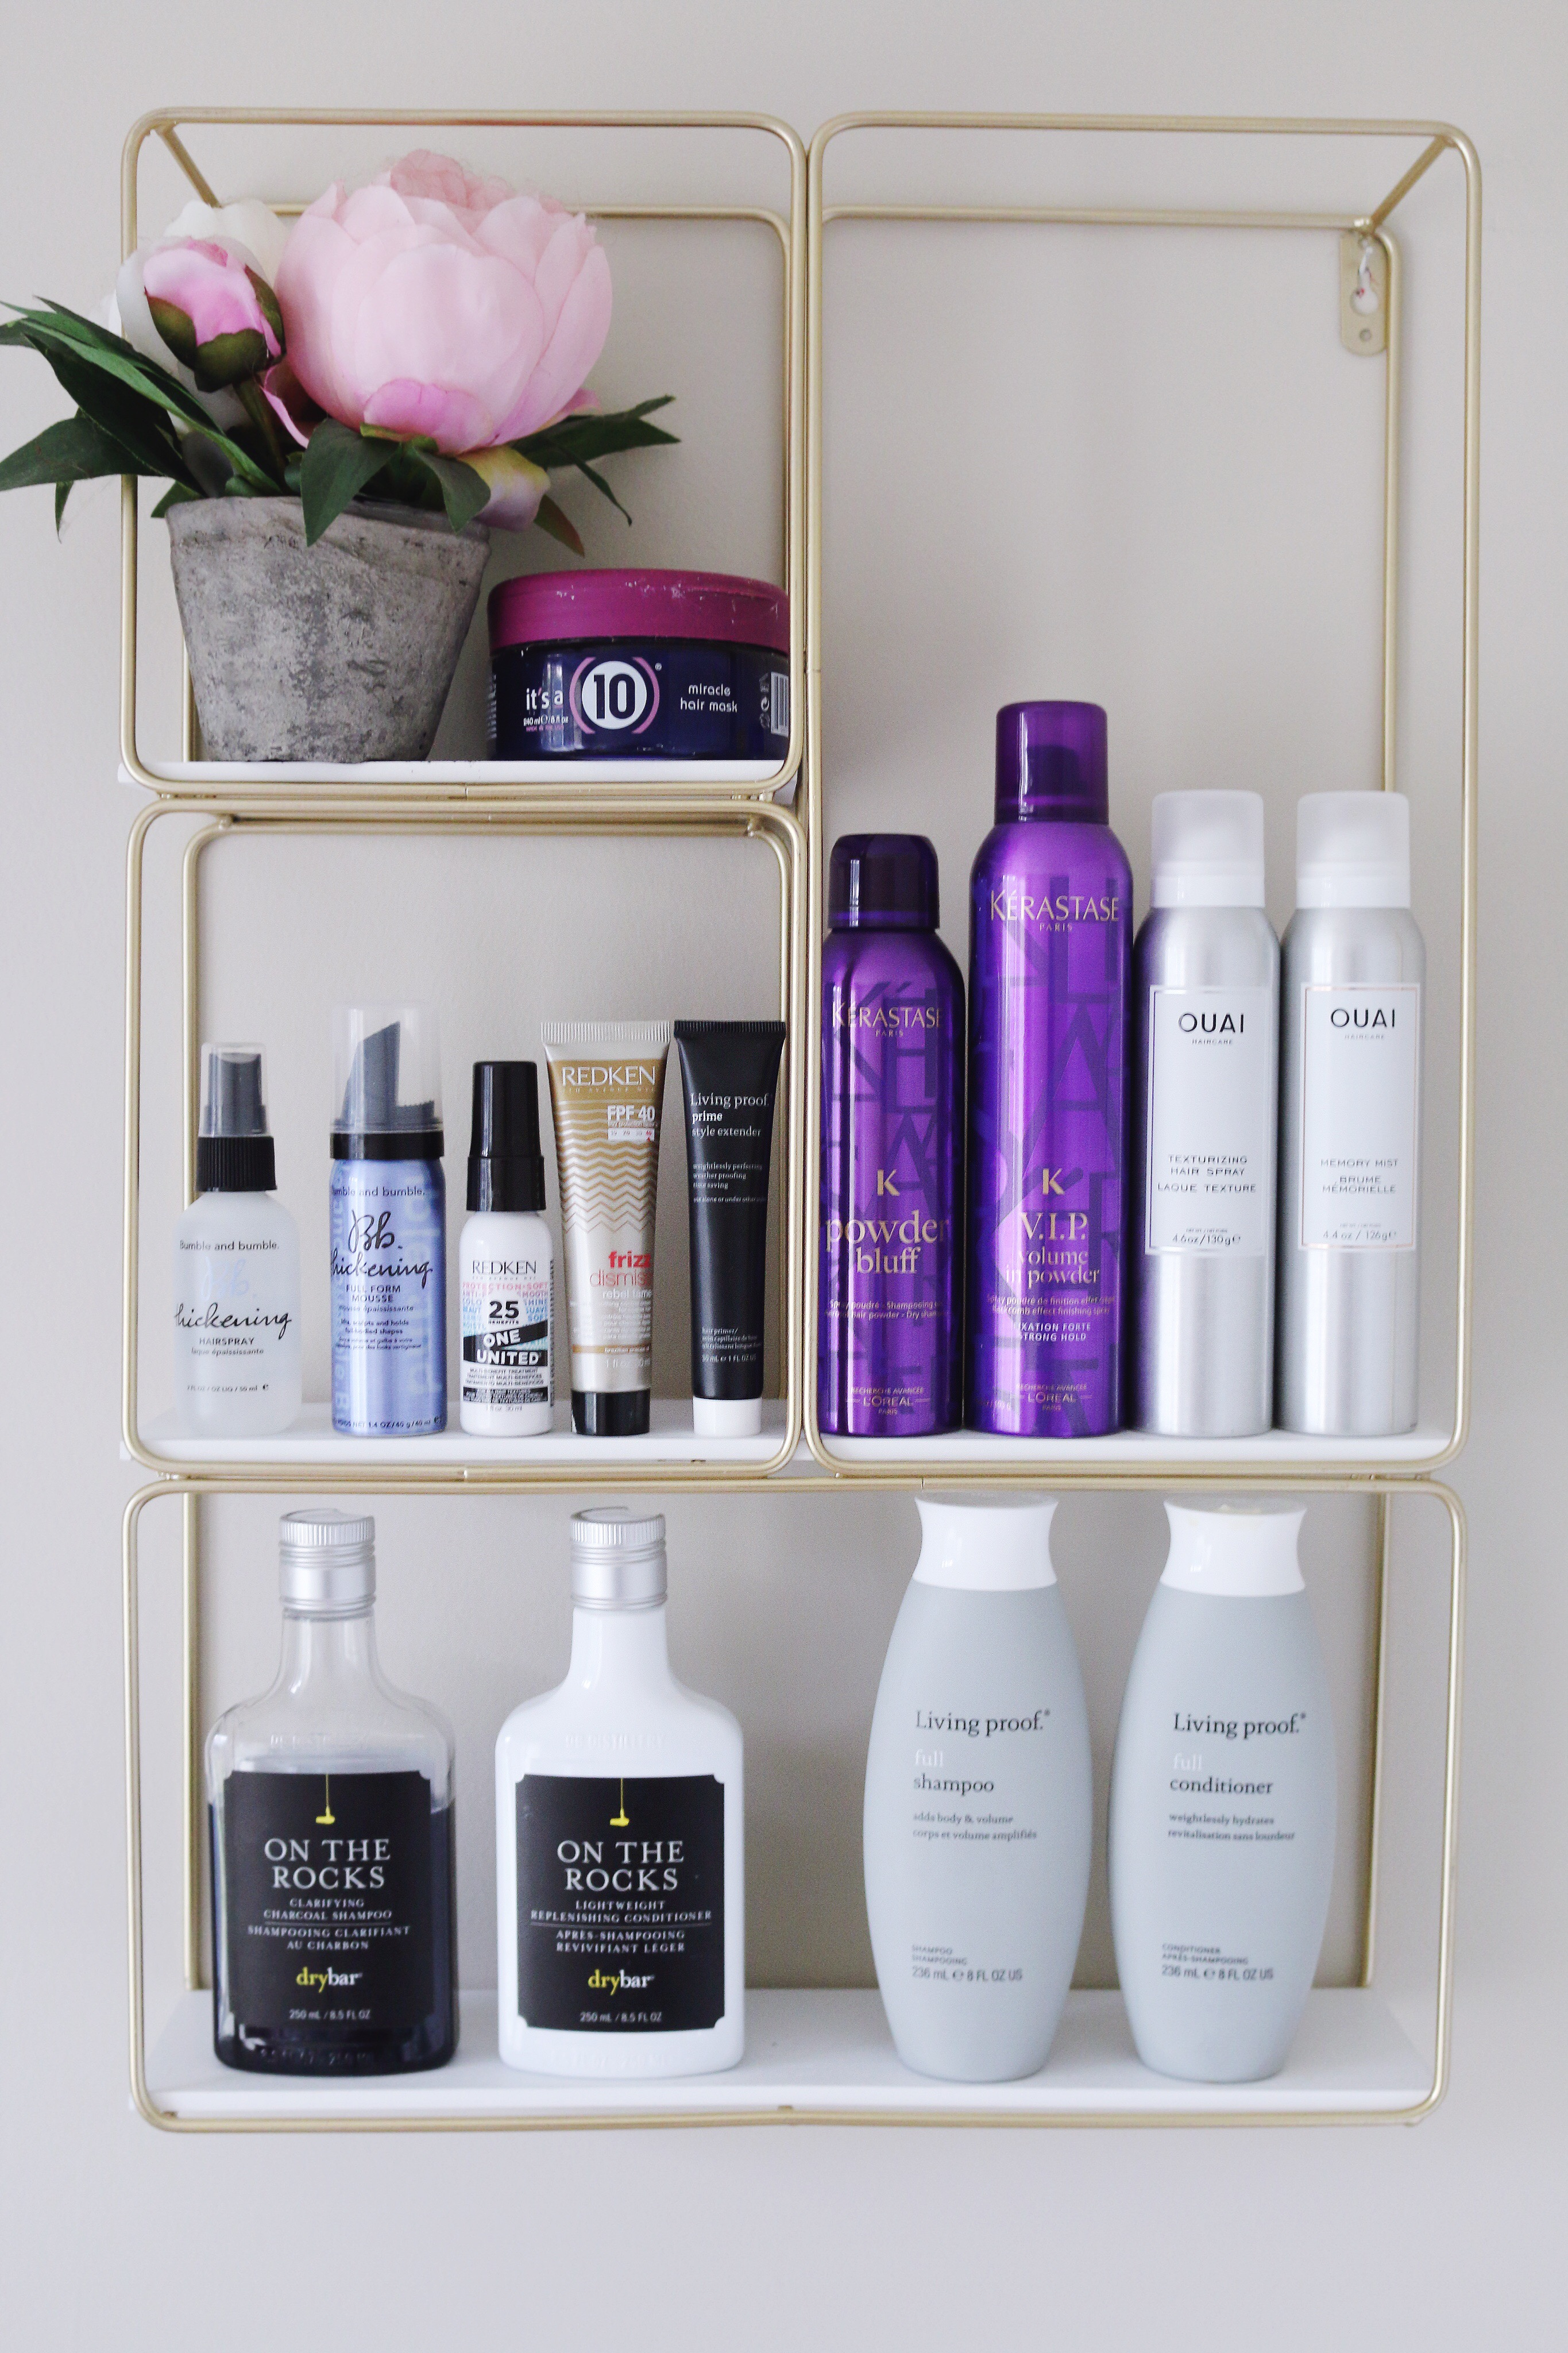 My complete haircare routine and favorite products